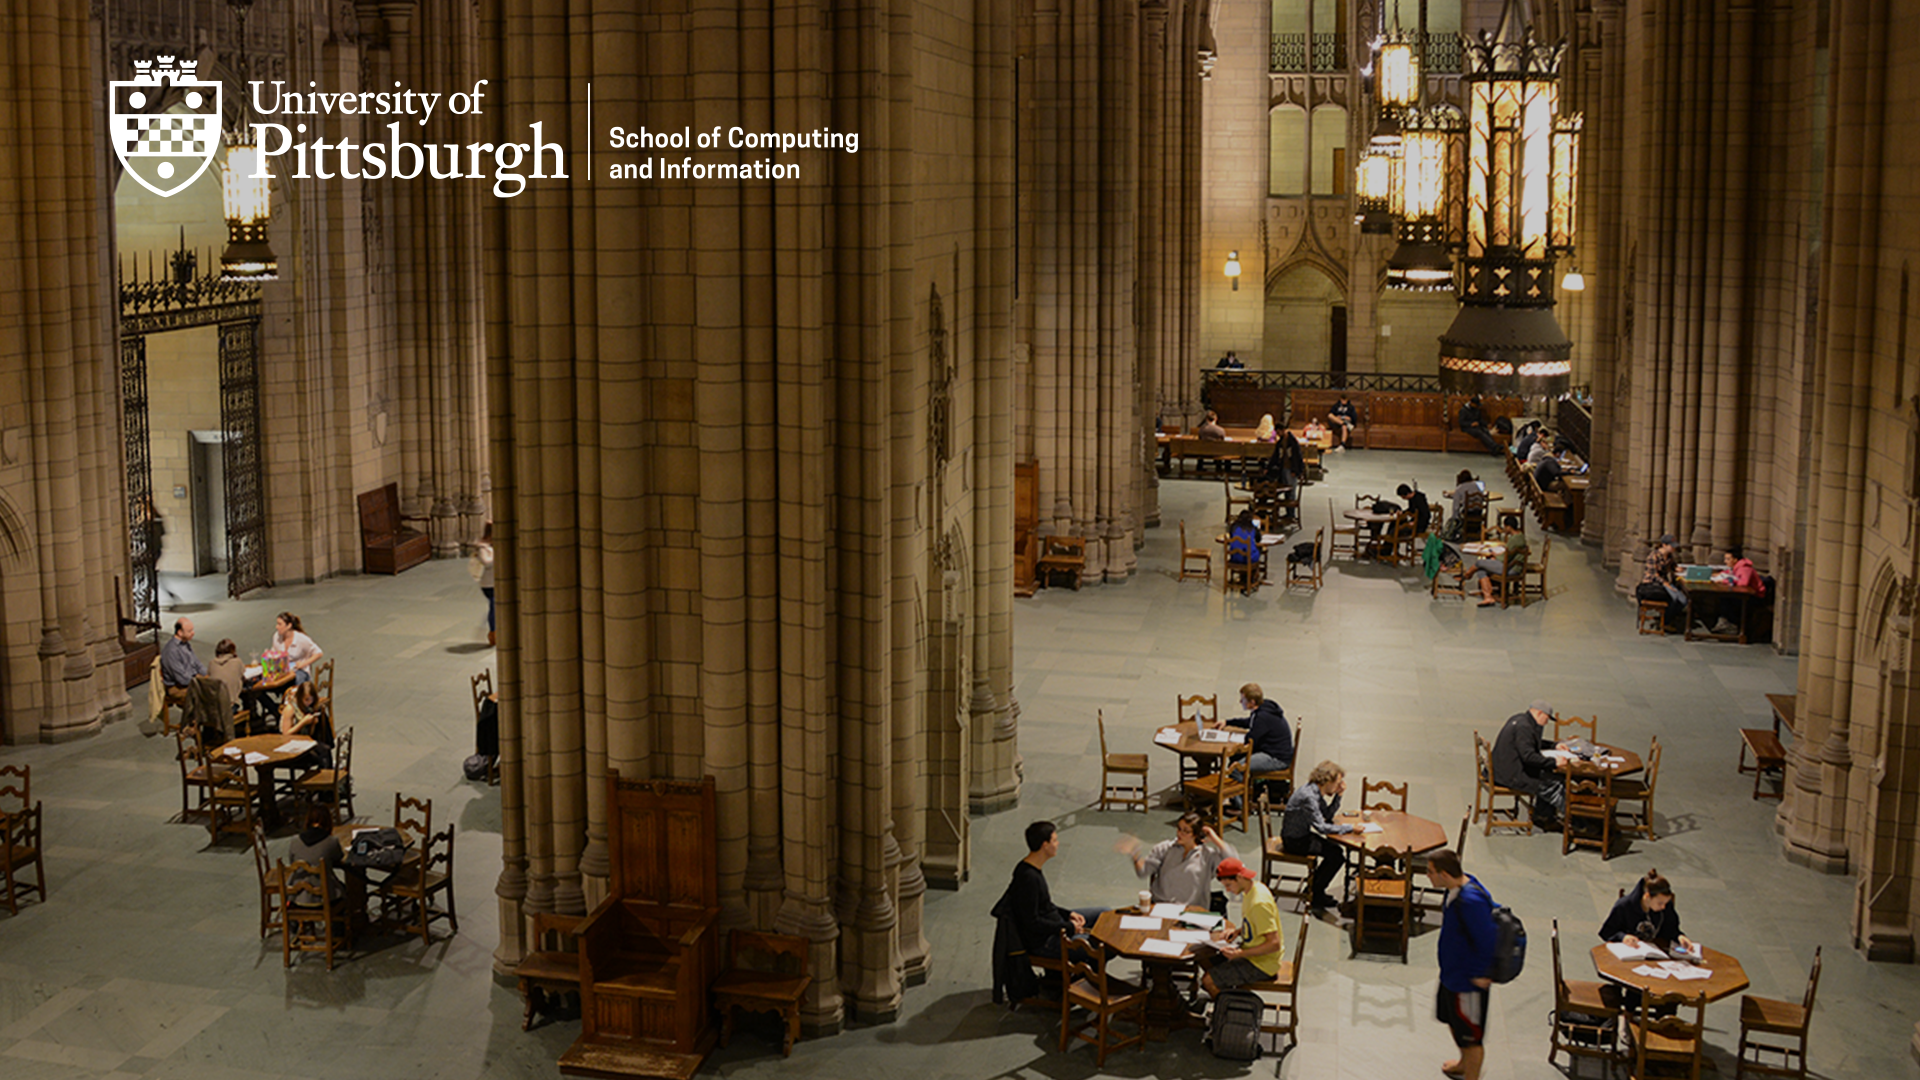 Zoom background of students studying in cathedral with logo in top left corner